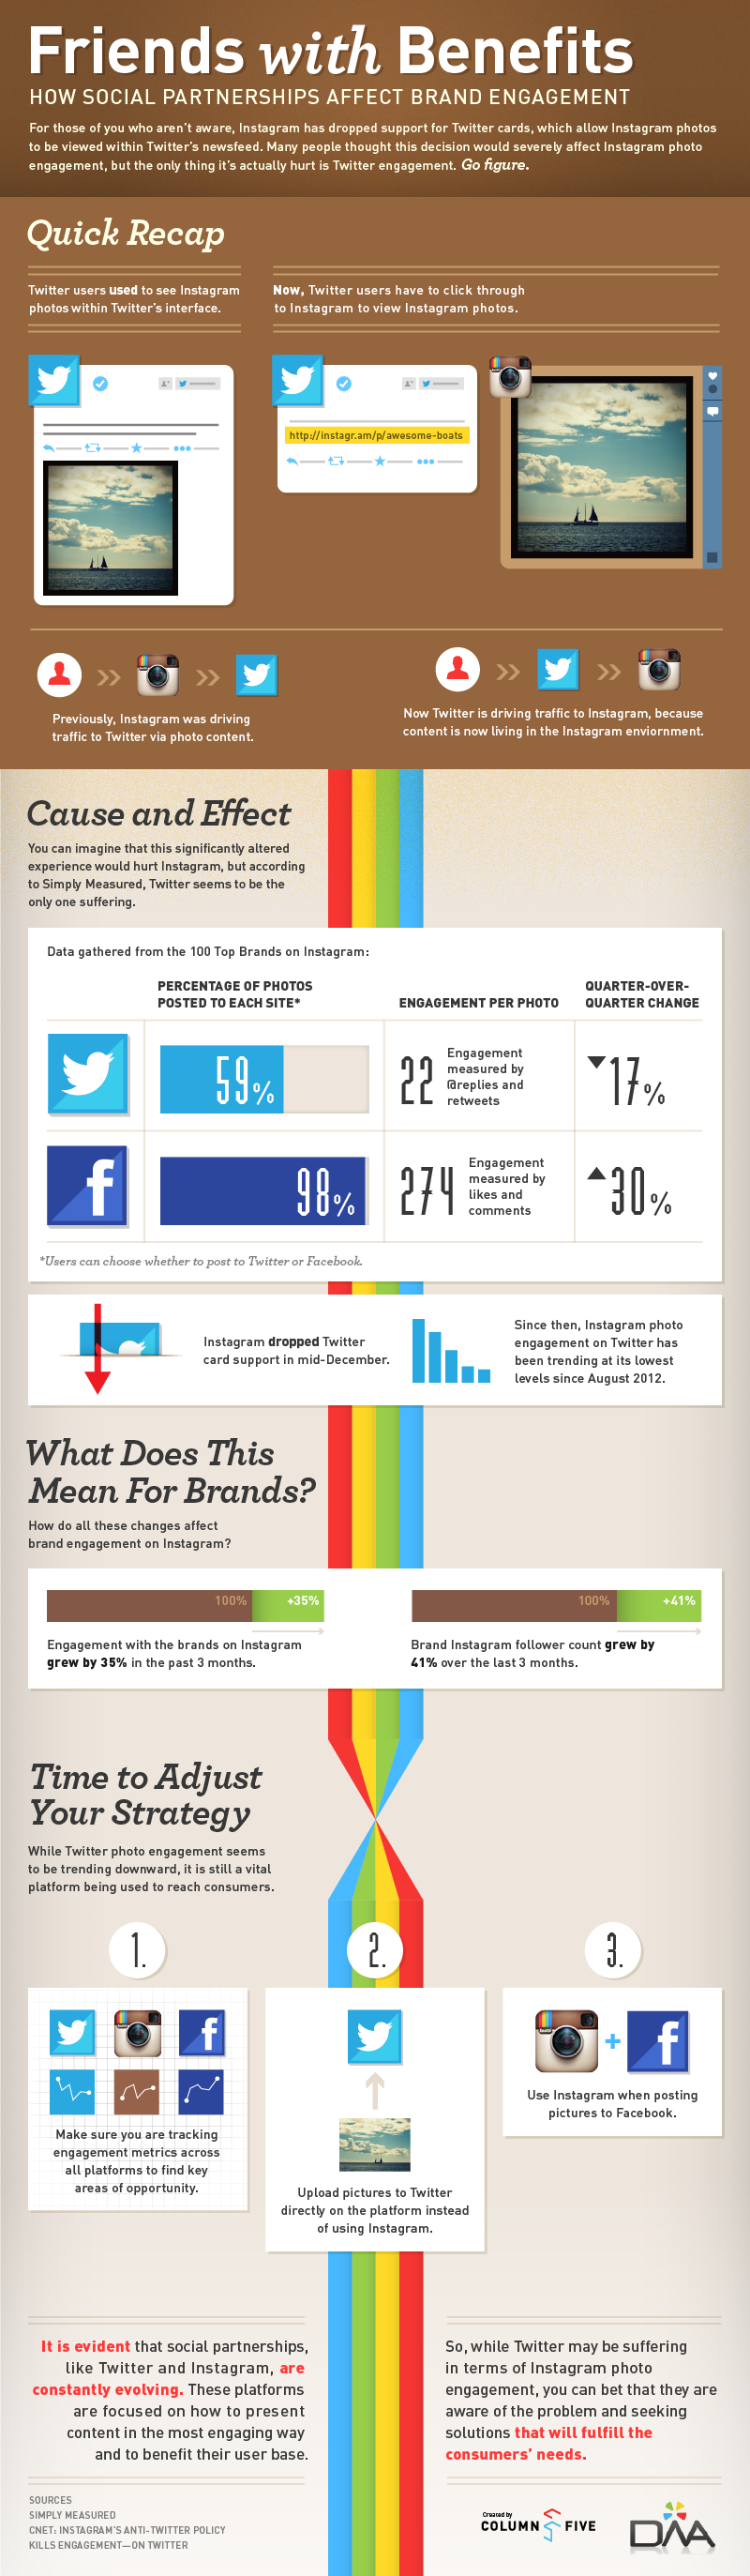 Friends With Benefits - How Social Partnerships Affect Brand Engagement